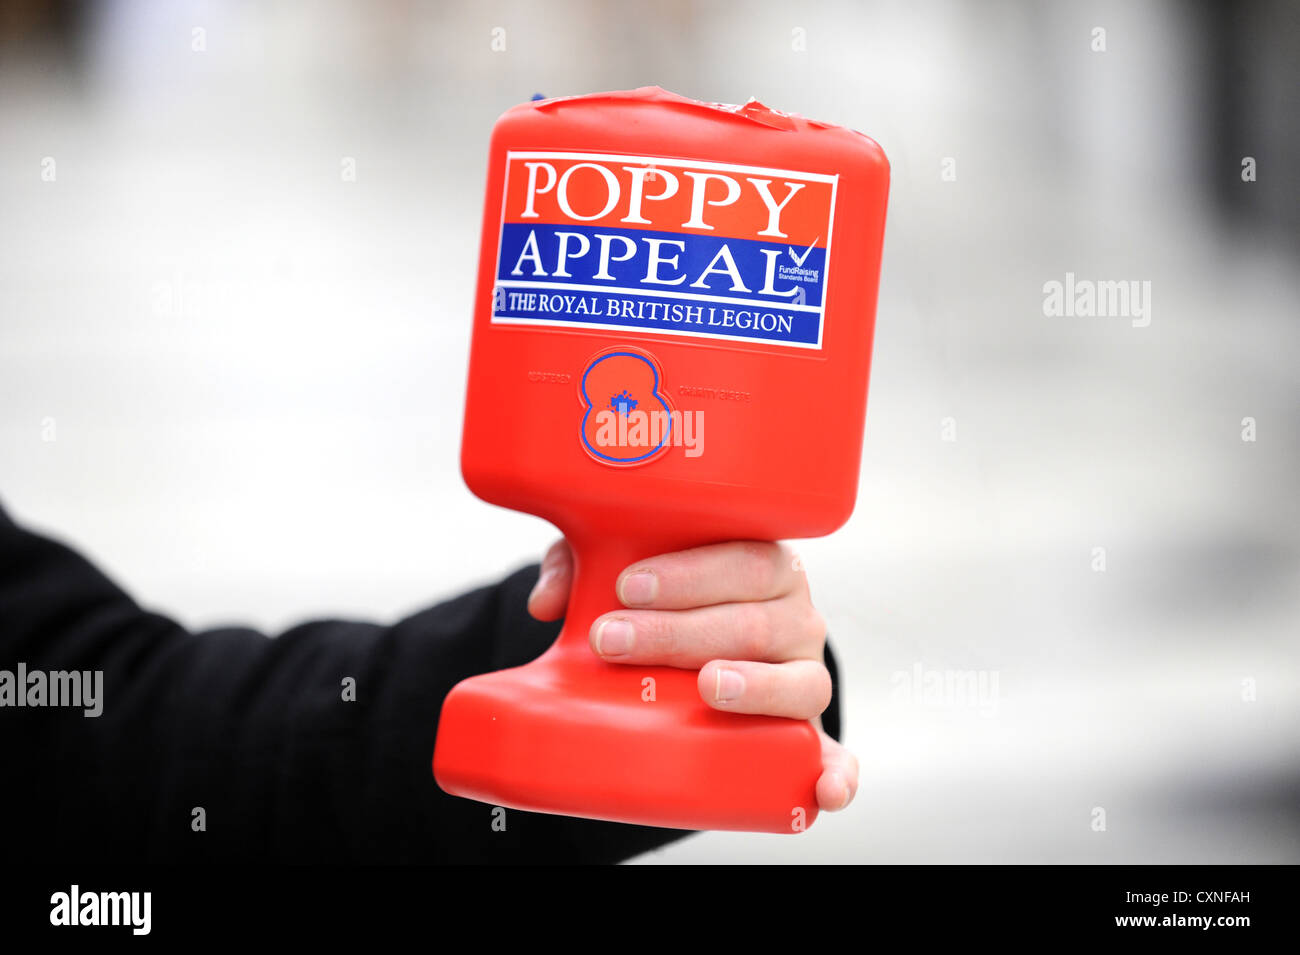 Collecting for the Royal British Legion Poppy Appeal - Stock Image